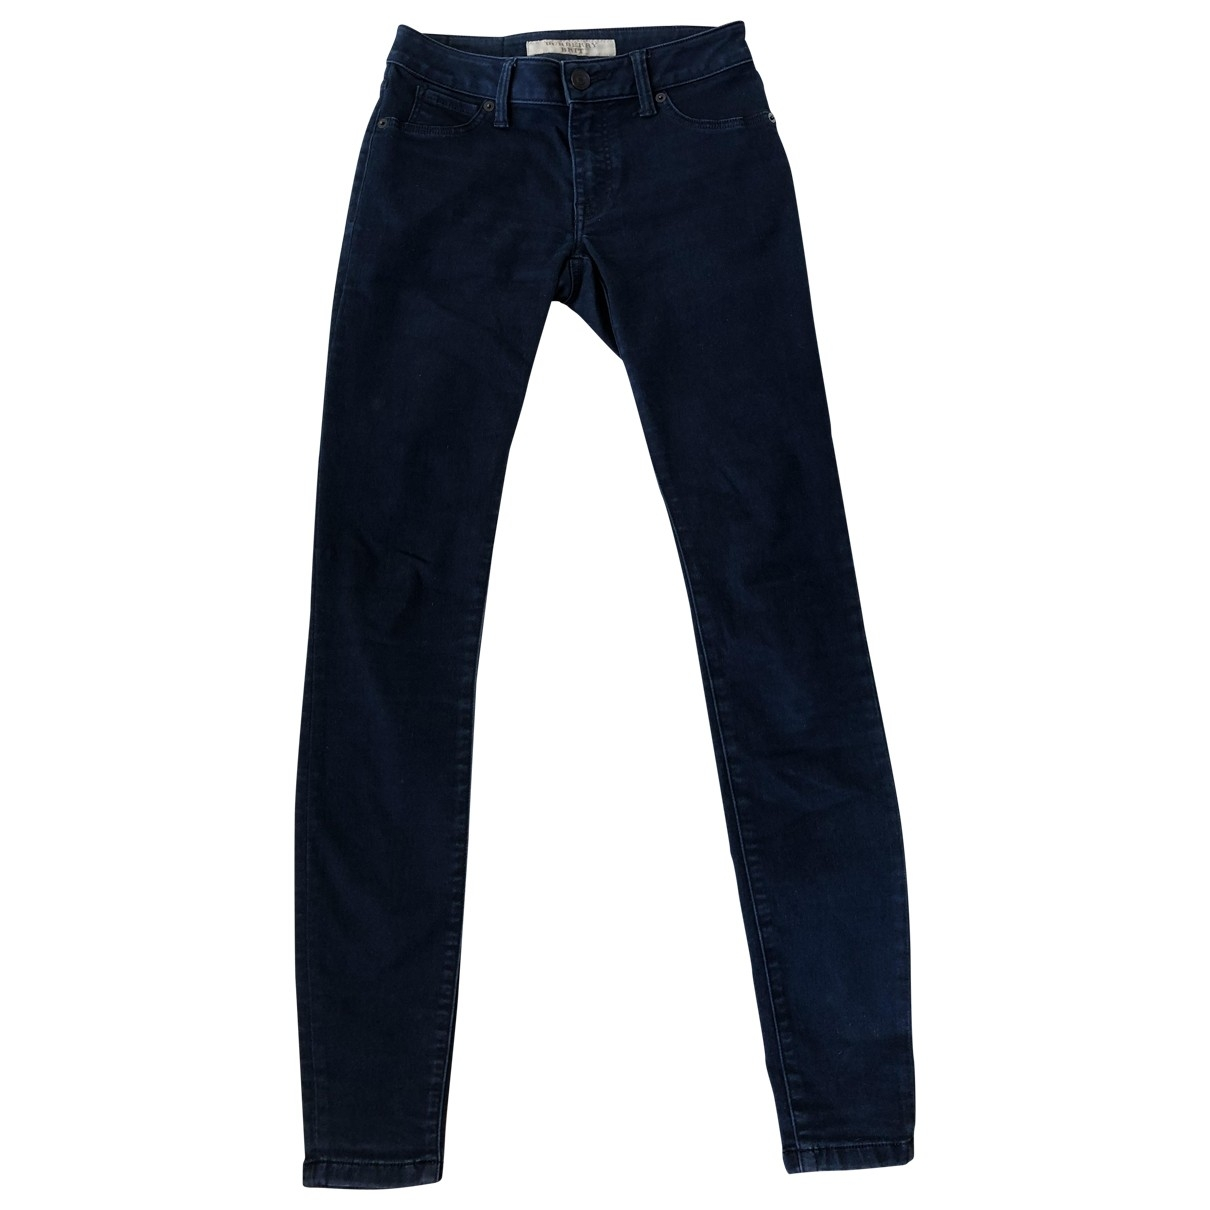 Burberry \N Blue Cotton - elasthane Jeans for Women 25 US